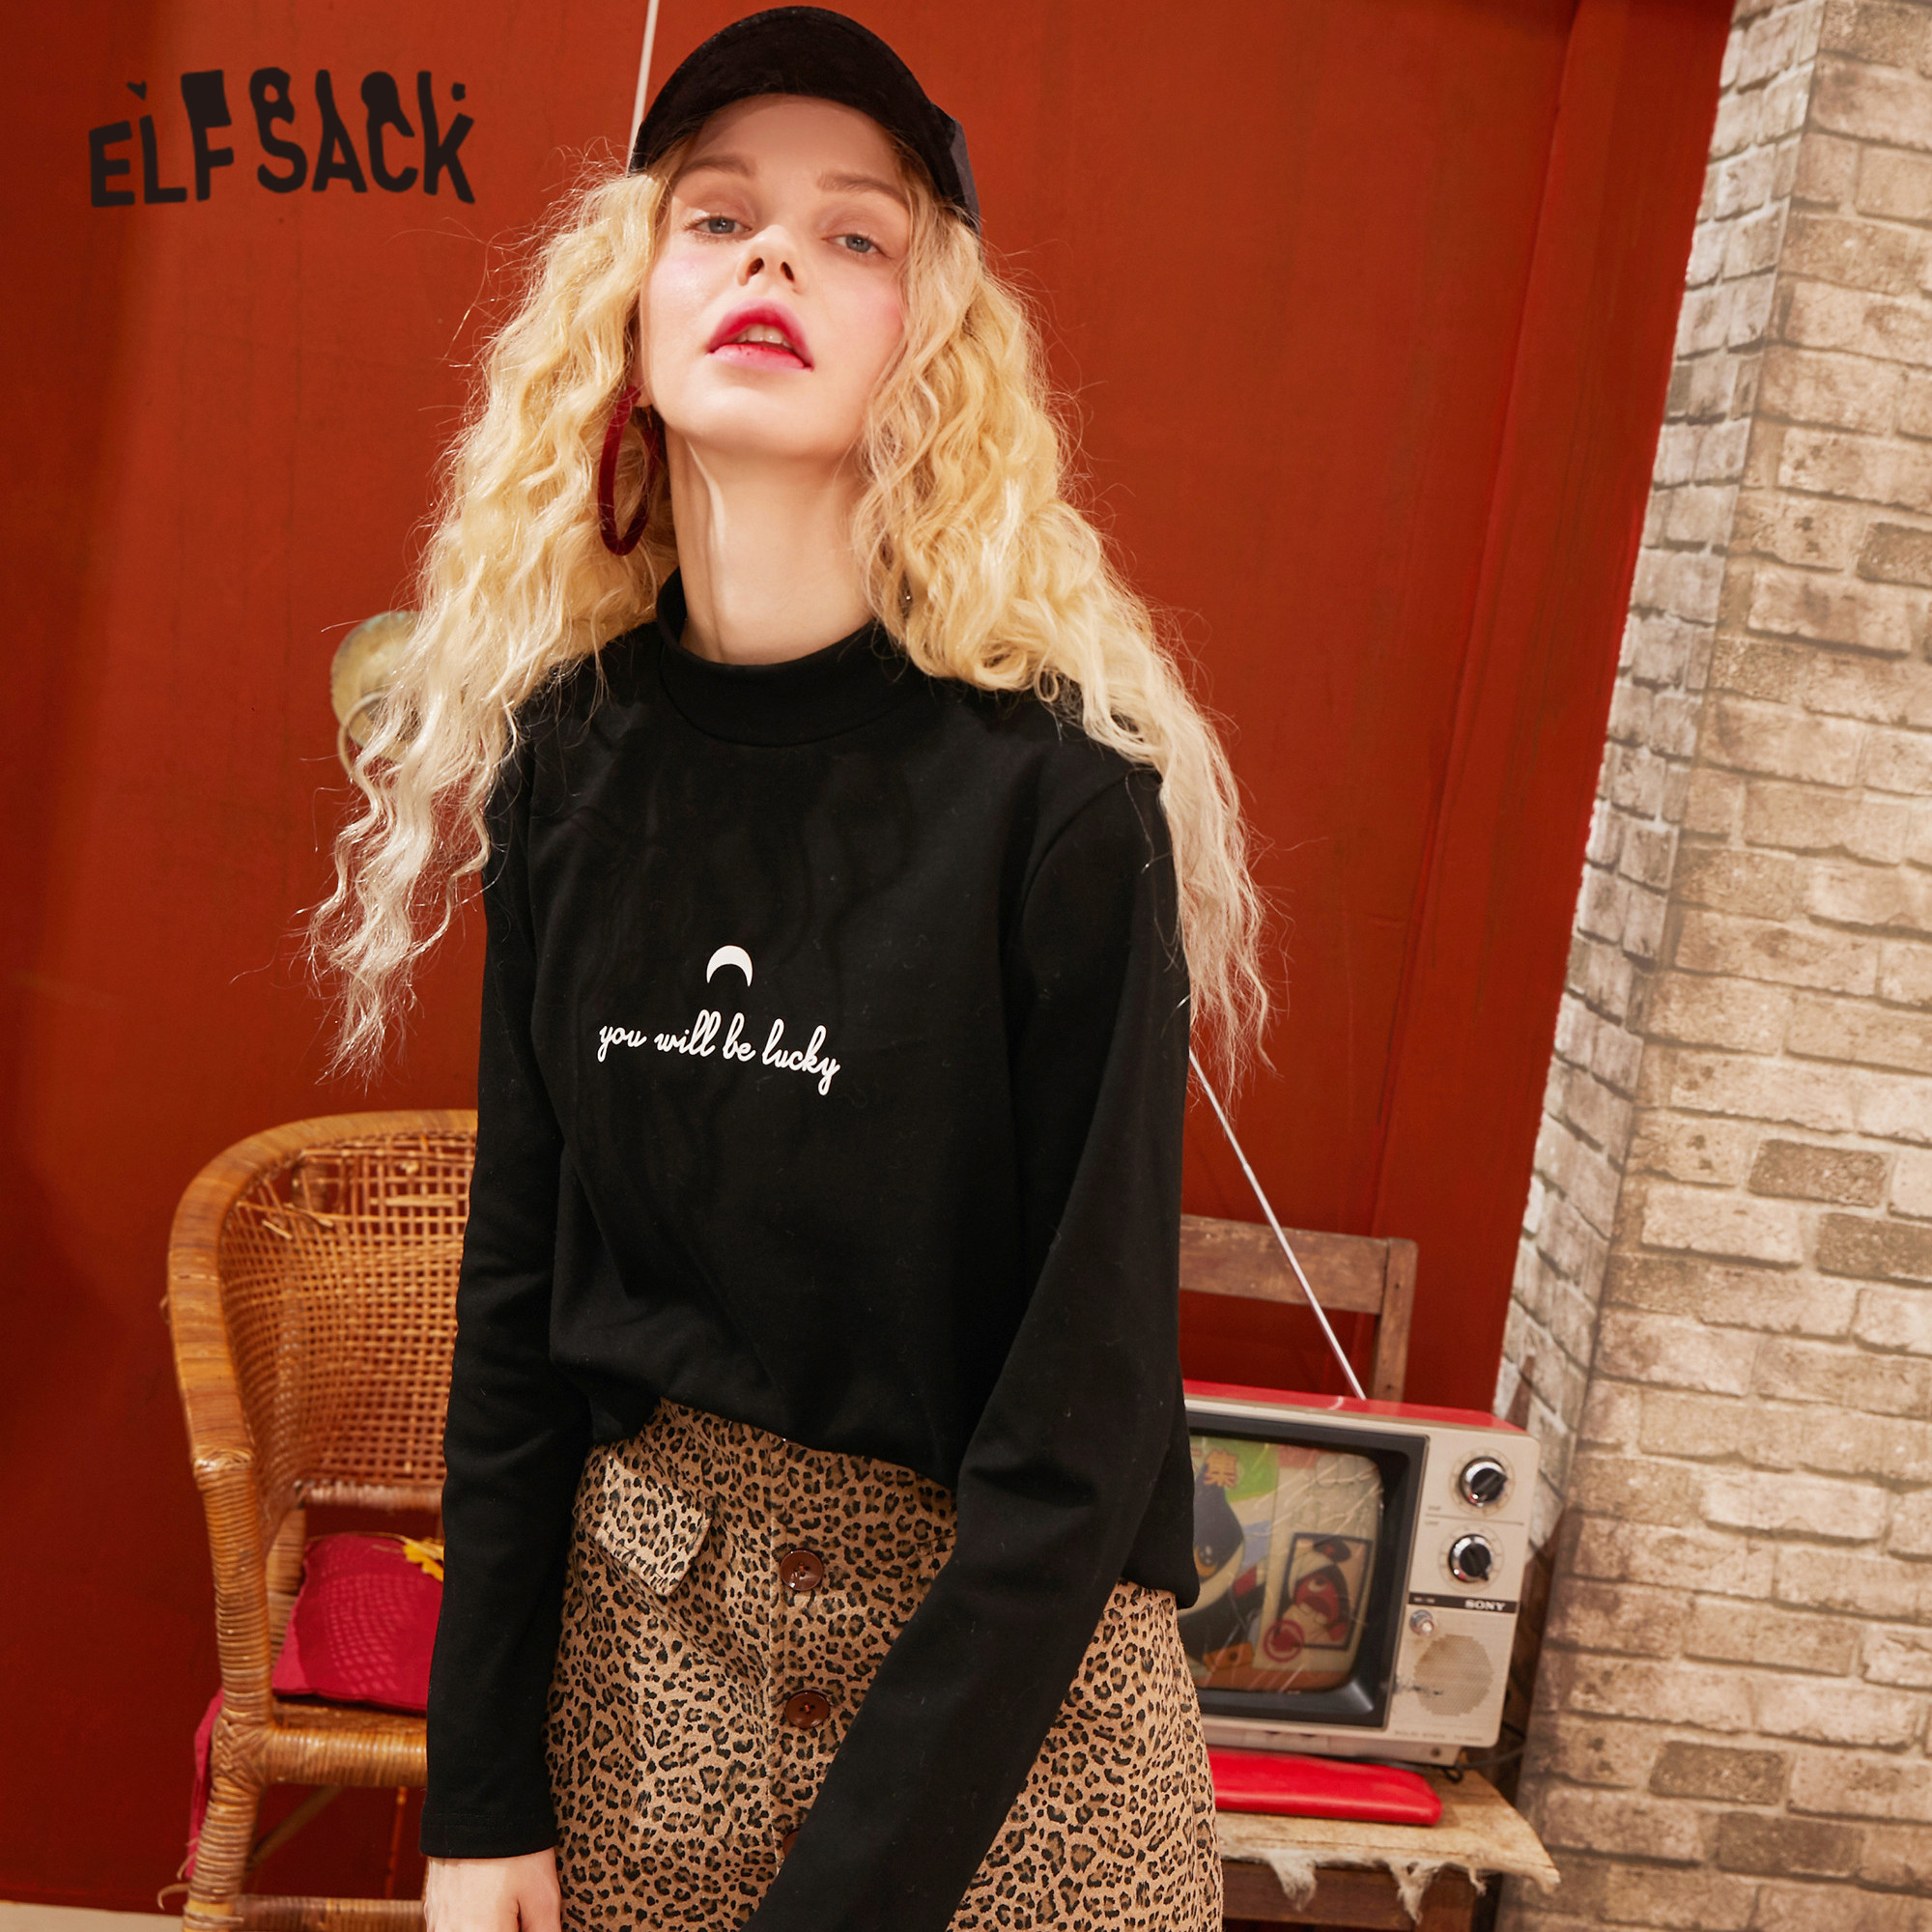 ELFSACK Black Solid Letter Print Minimalist Style T Shirts Women 2020 Spring New Pure Long Sleeve Casual Ladies Basic Daily Tops